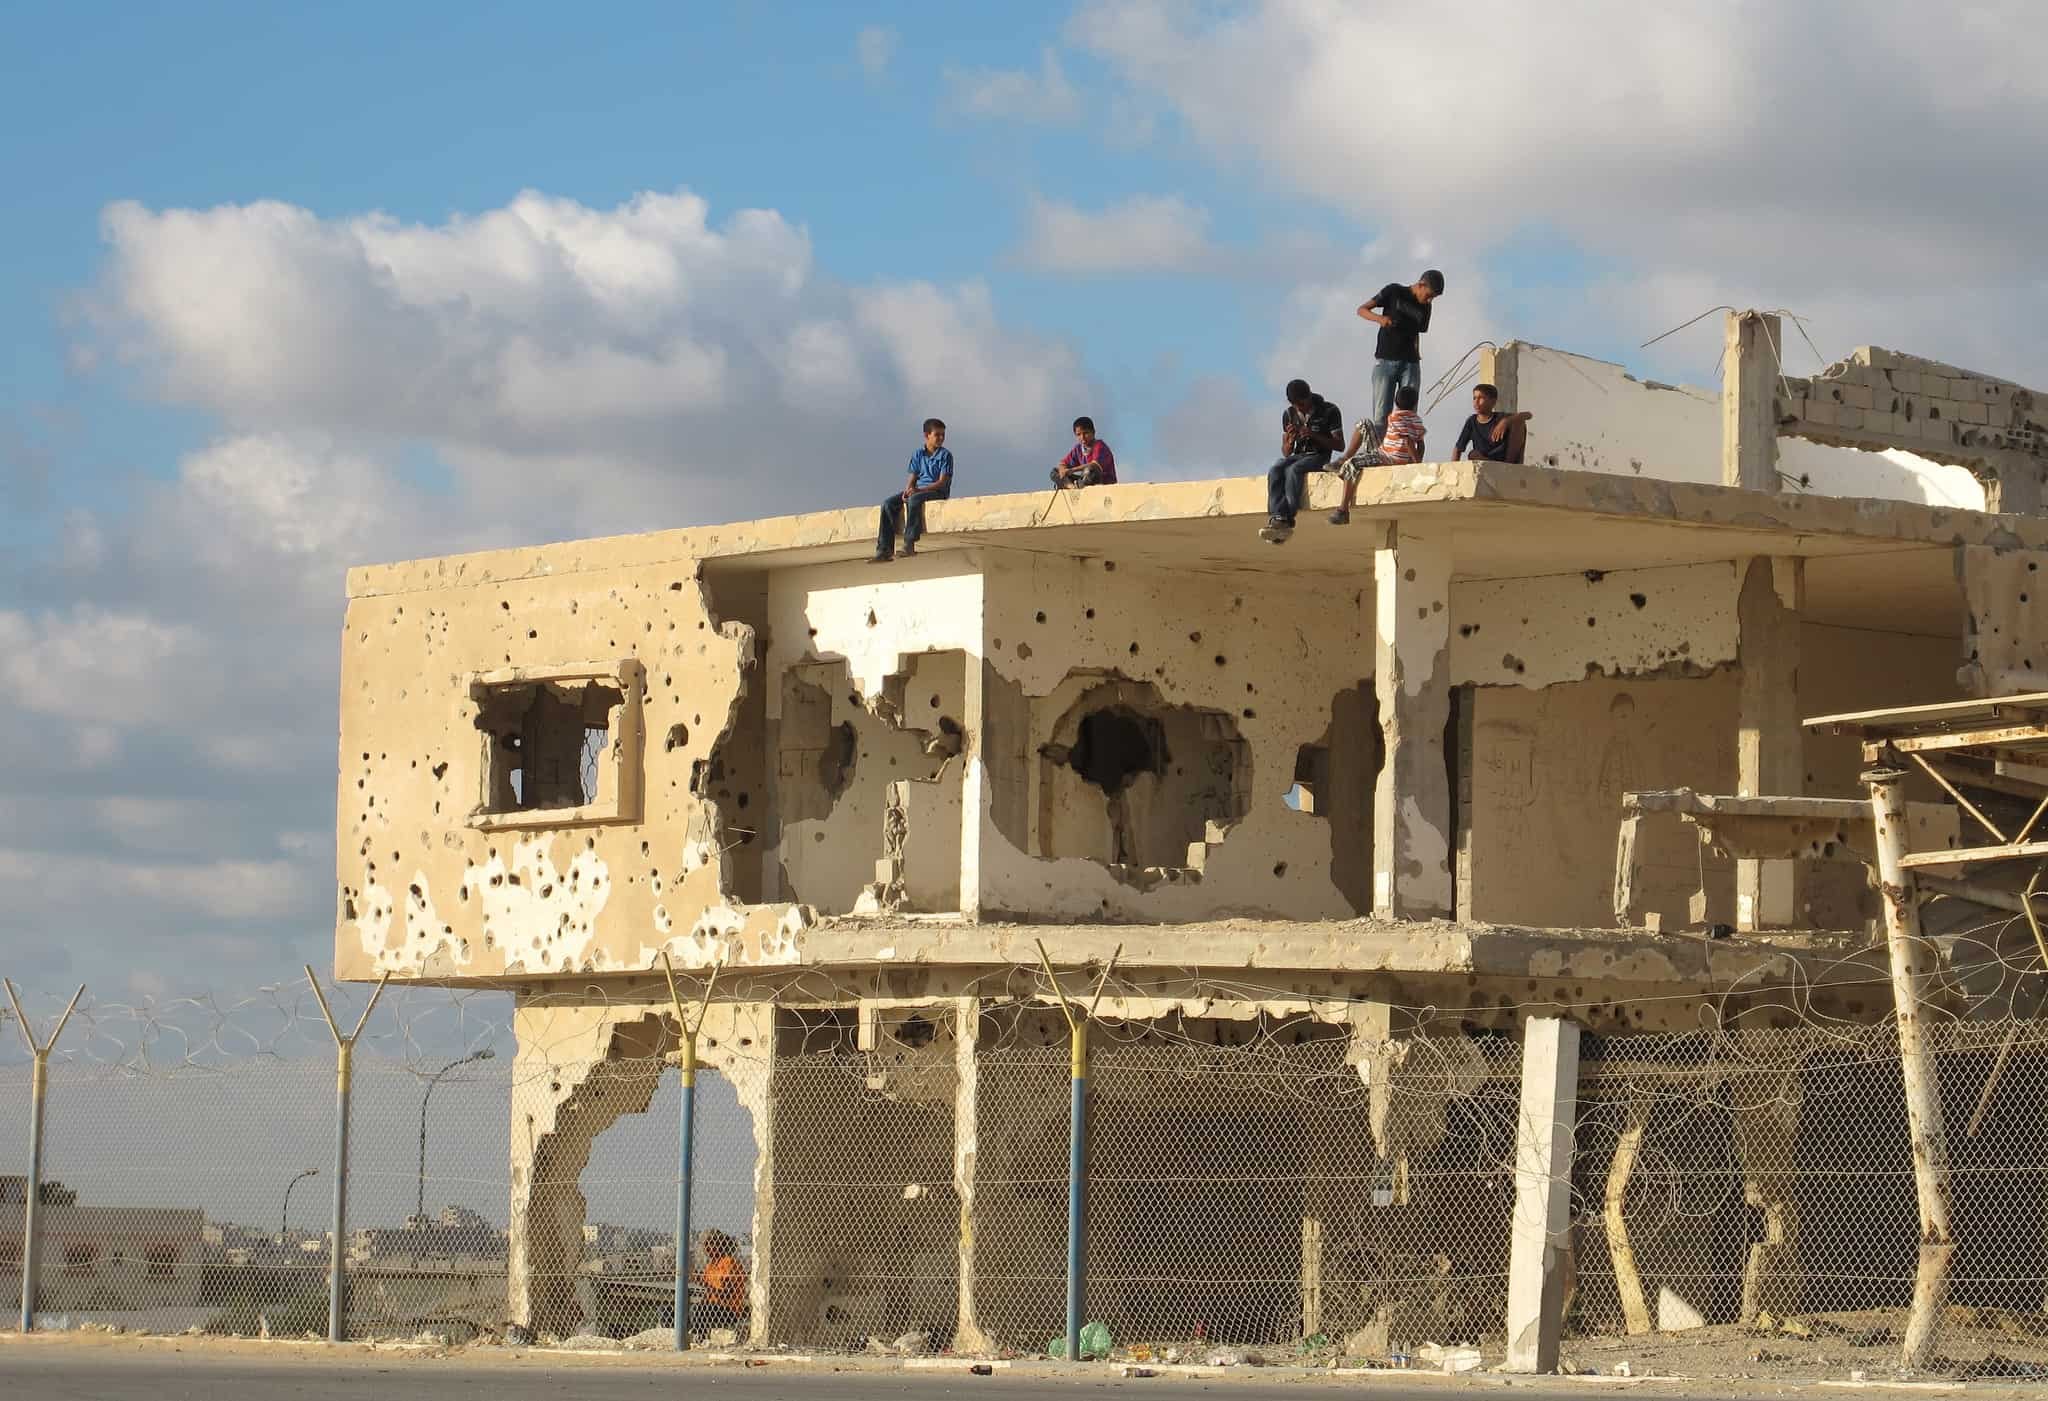 Life in Gaza (United Nations Photo flickr/cc)